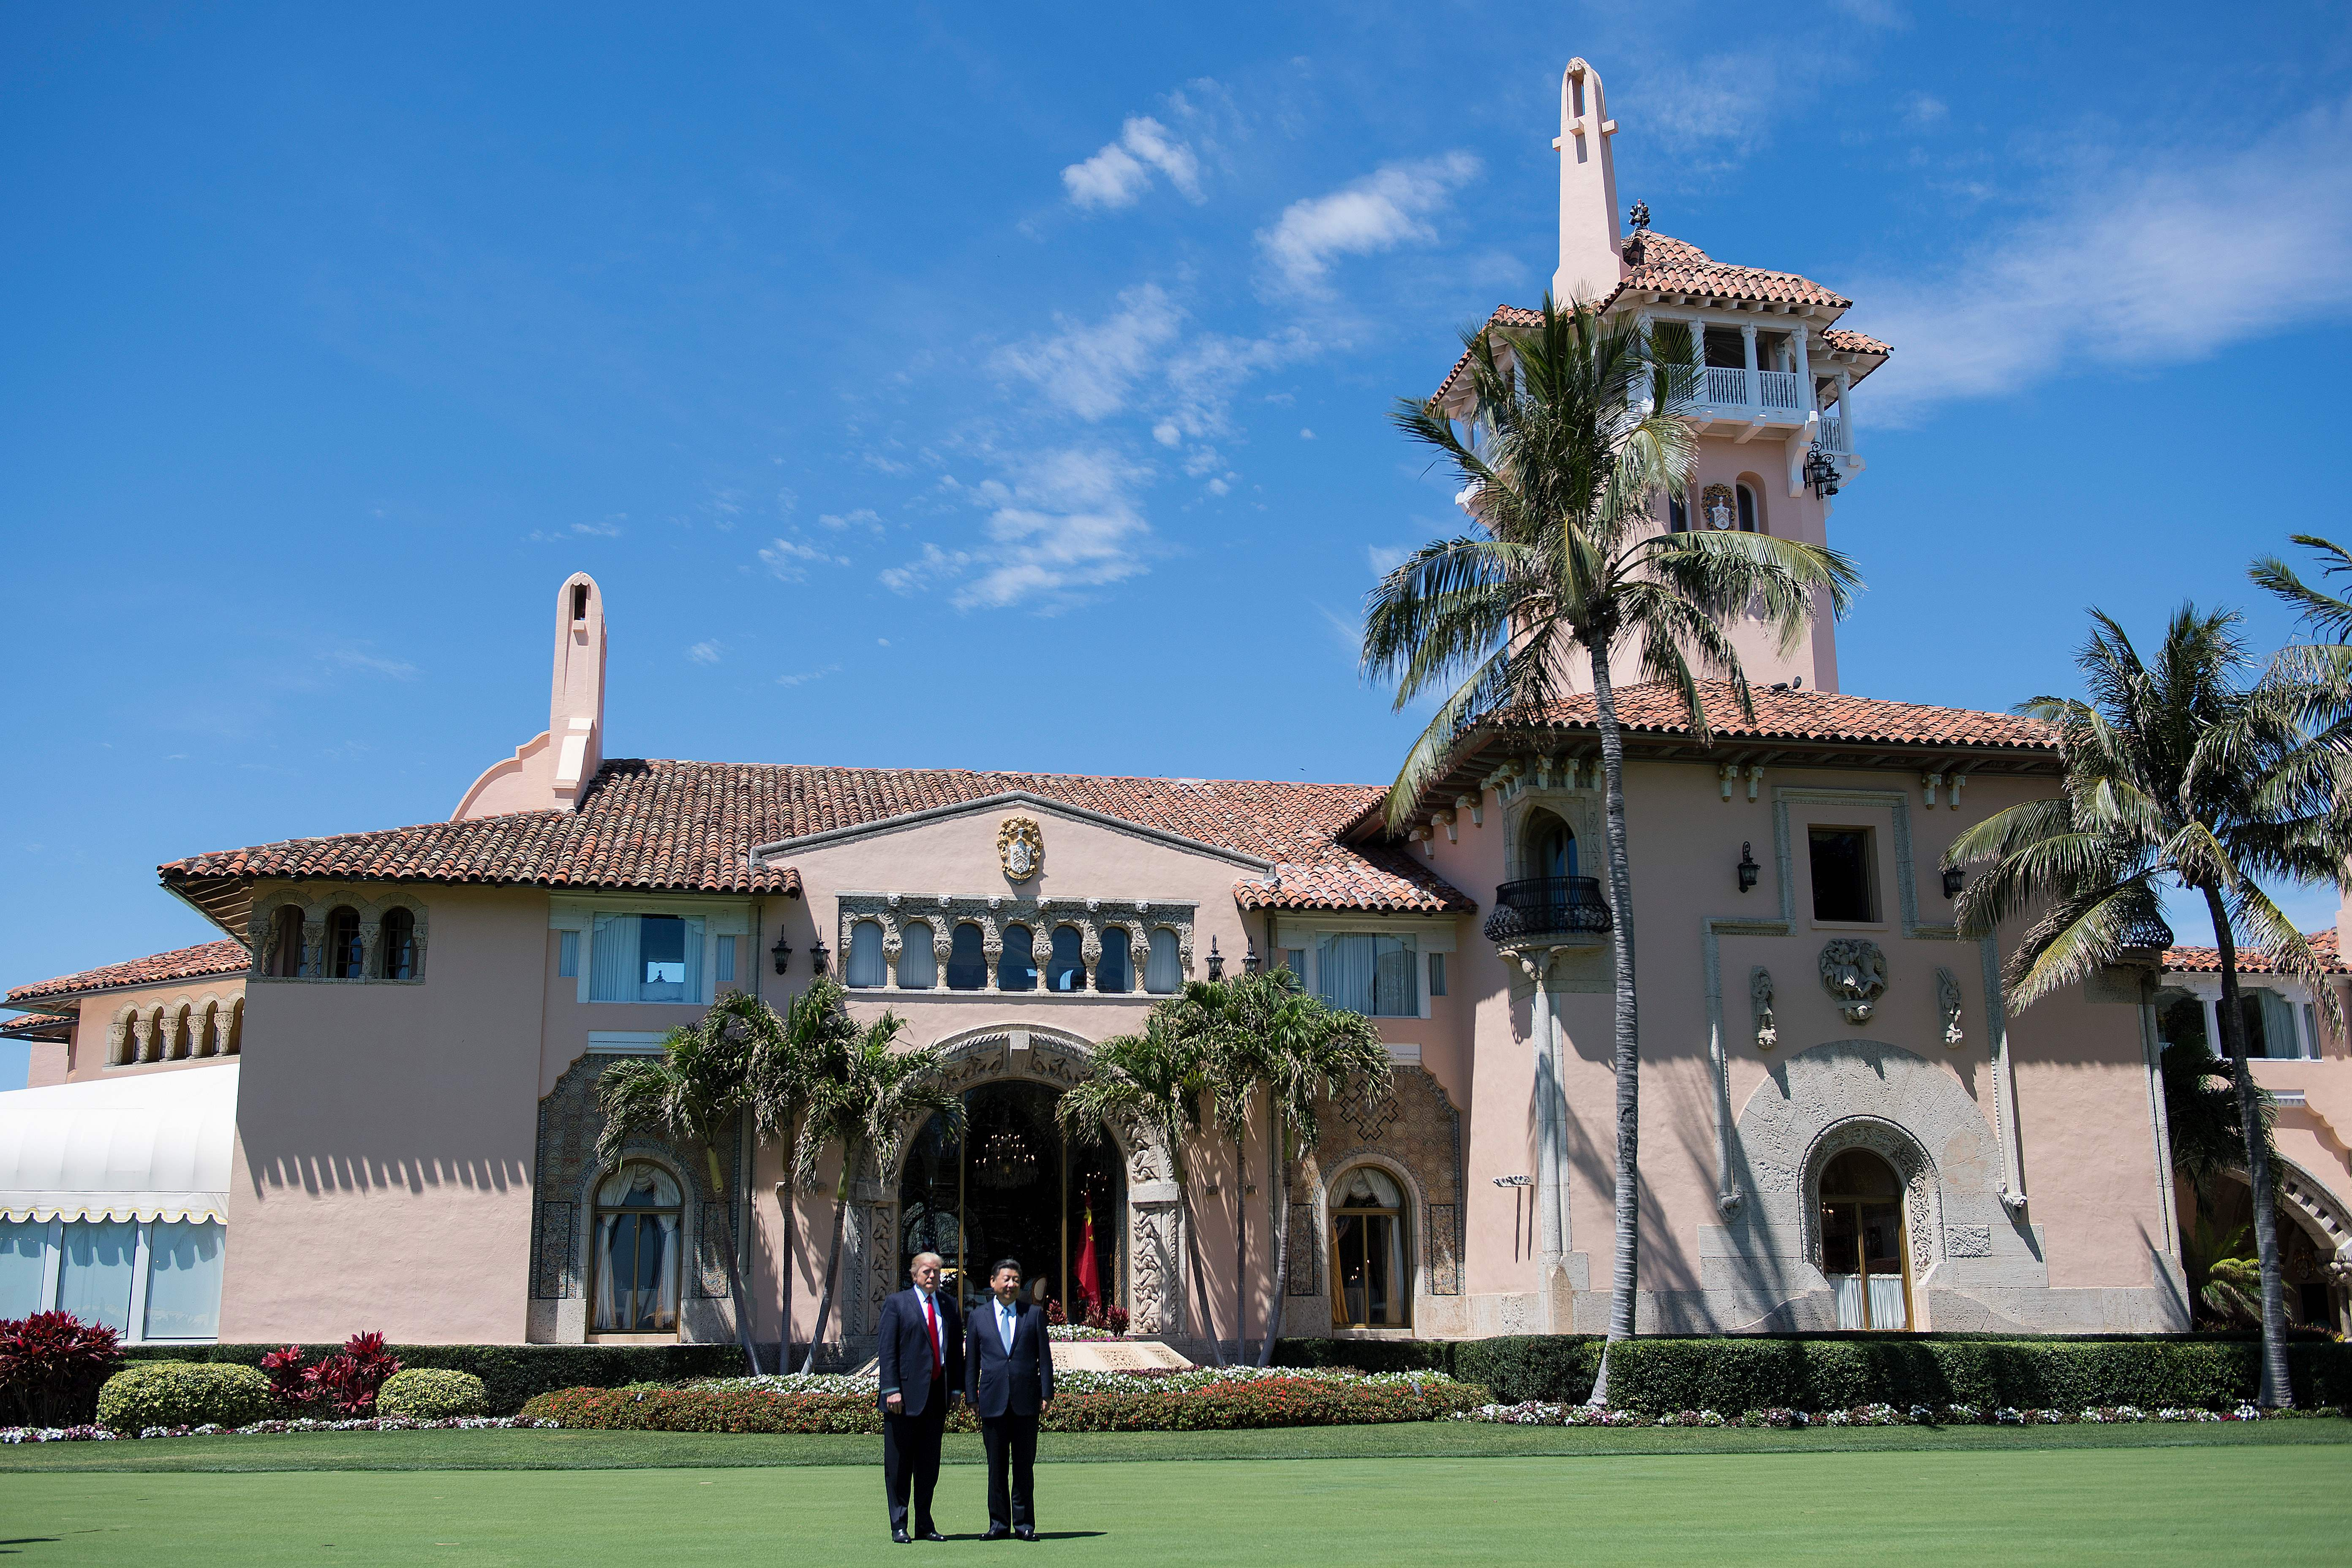 President Donald Trump and Chinese President Xi Jinping pose together at the Mar-a-Lago estate in West Palm Beach, Florida, April 7, 2017. (Credit: JIM WATSON/AFP/Getty Images)